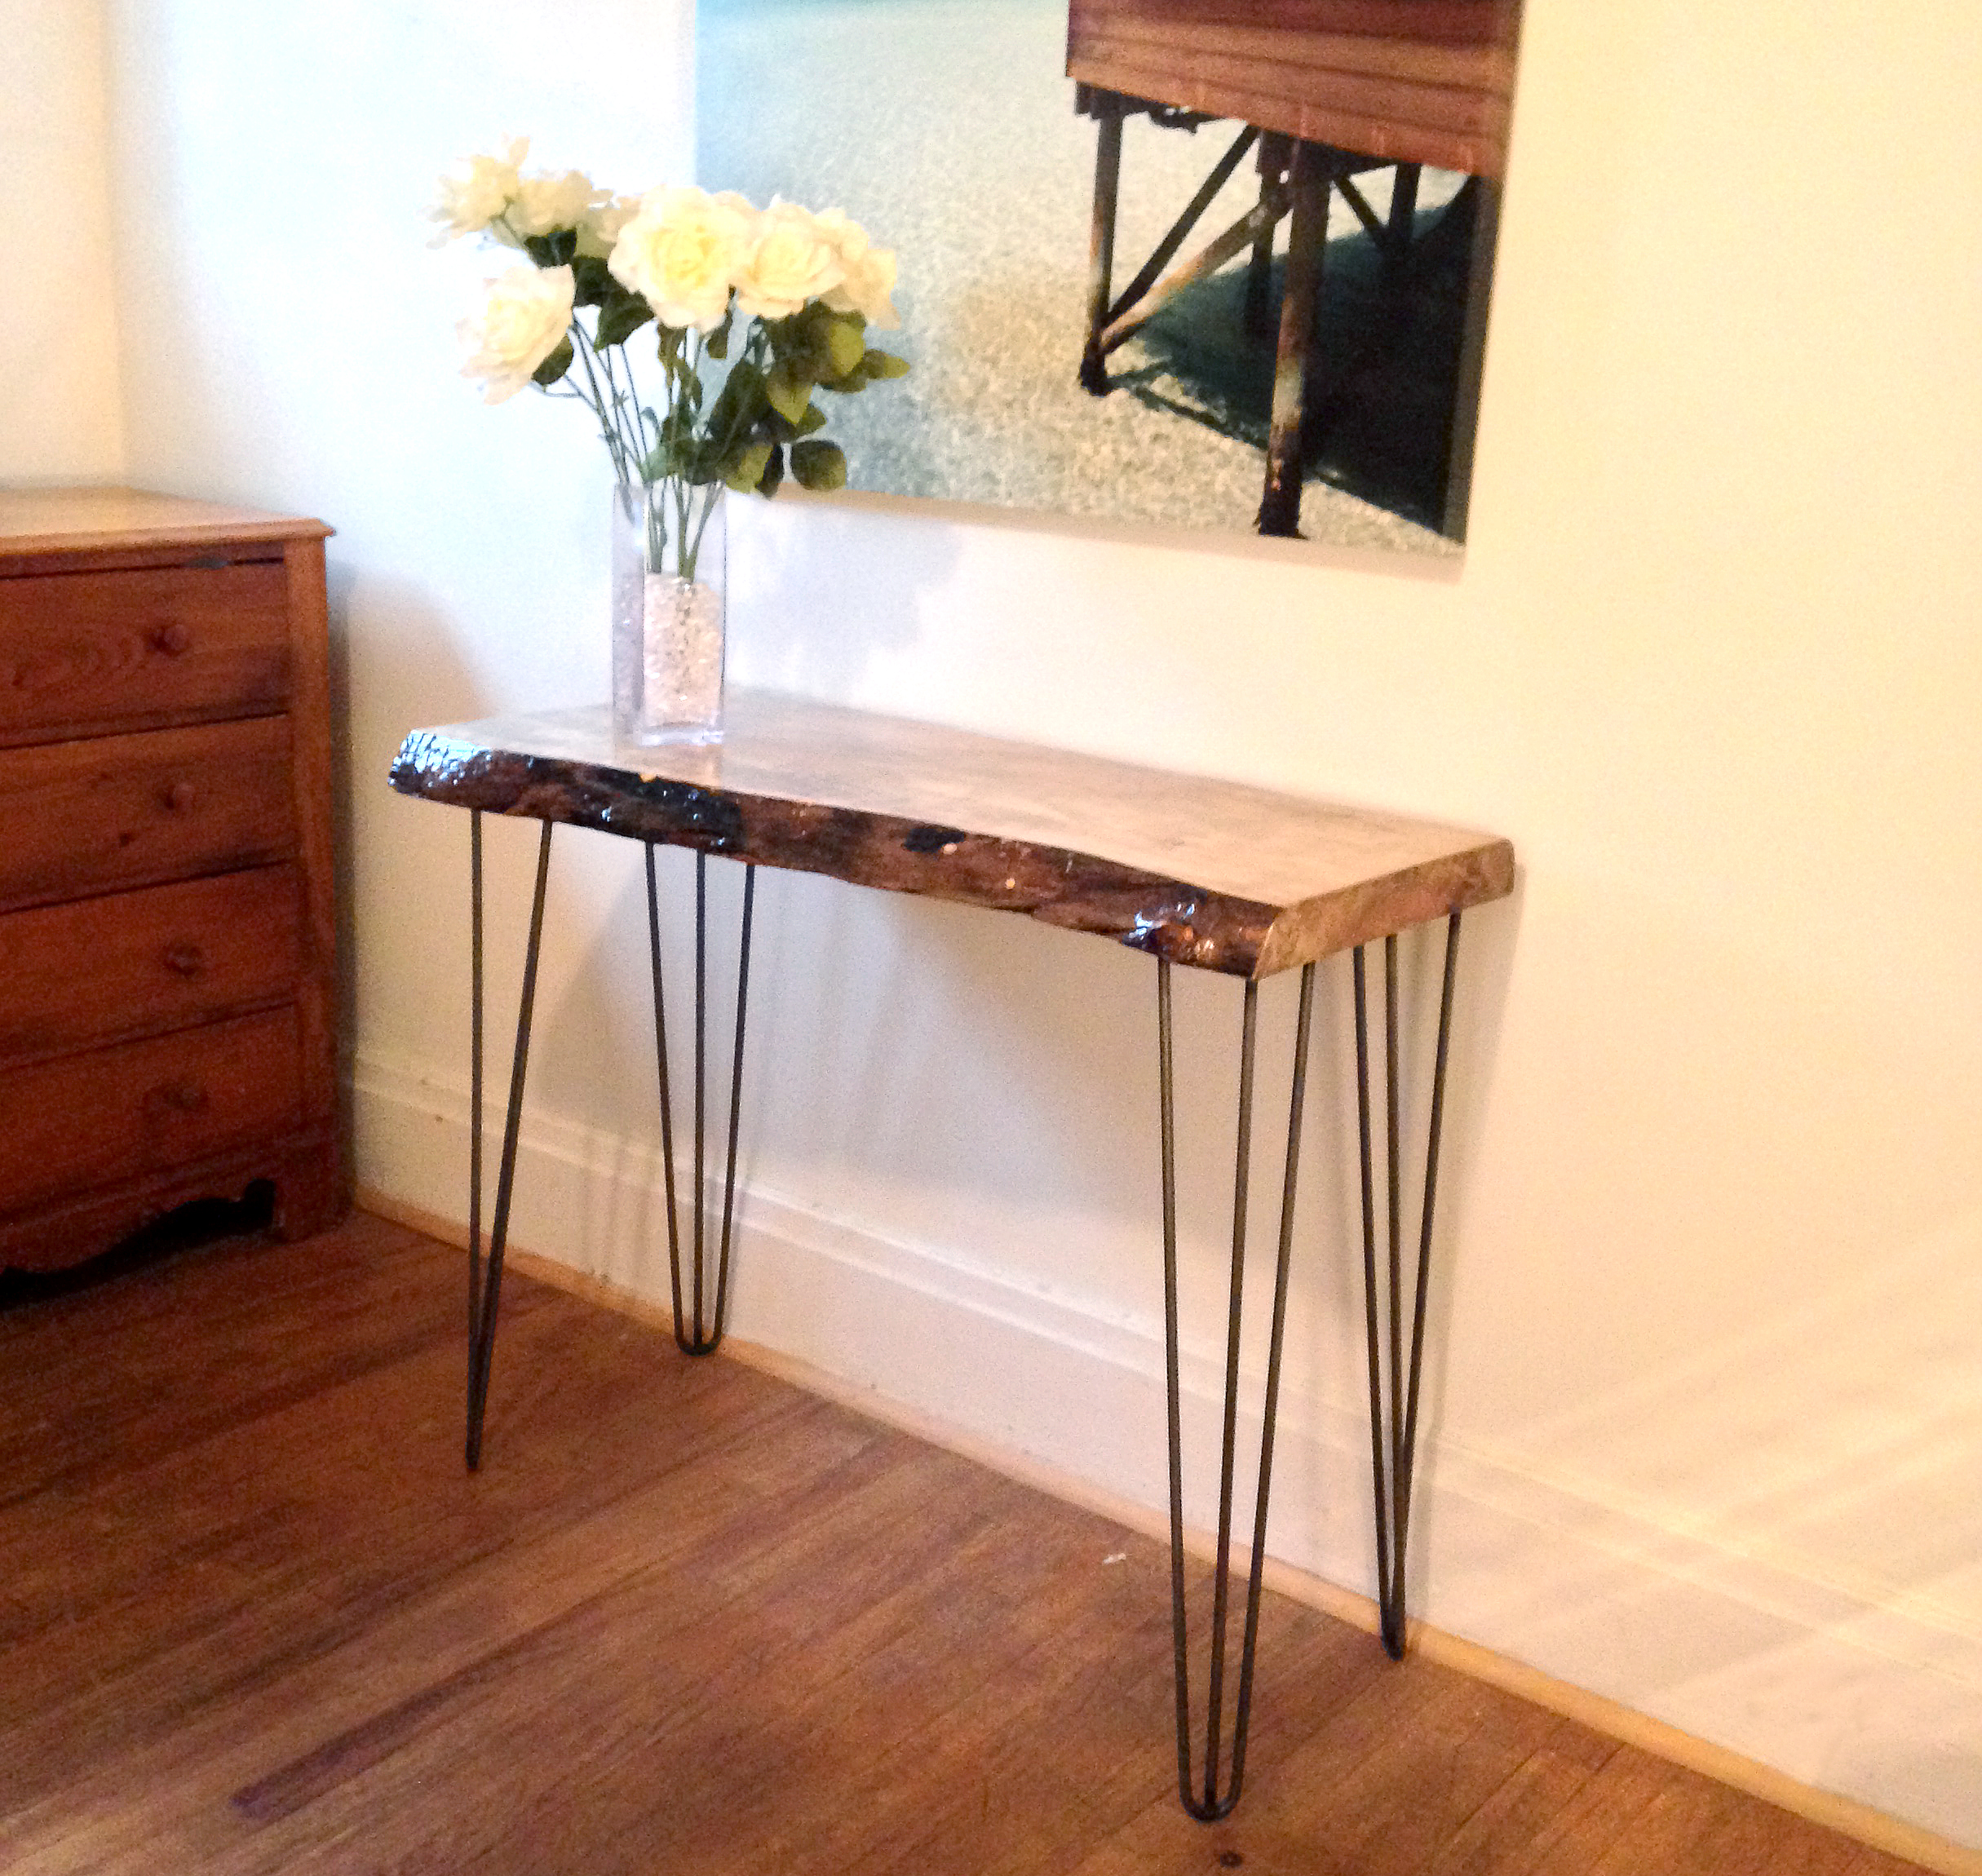 Spalted maple console table ajs antique revival spalted maple console table geotapseo Image collections